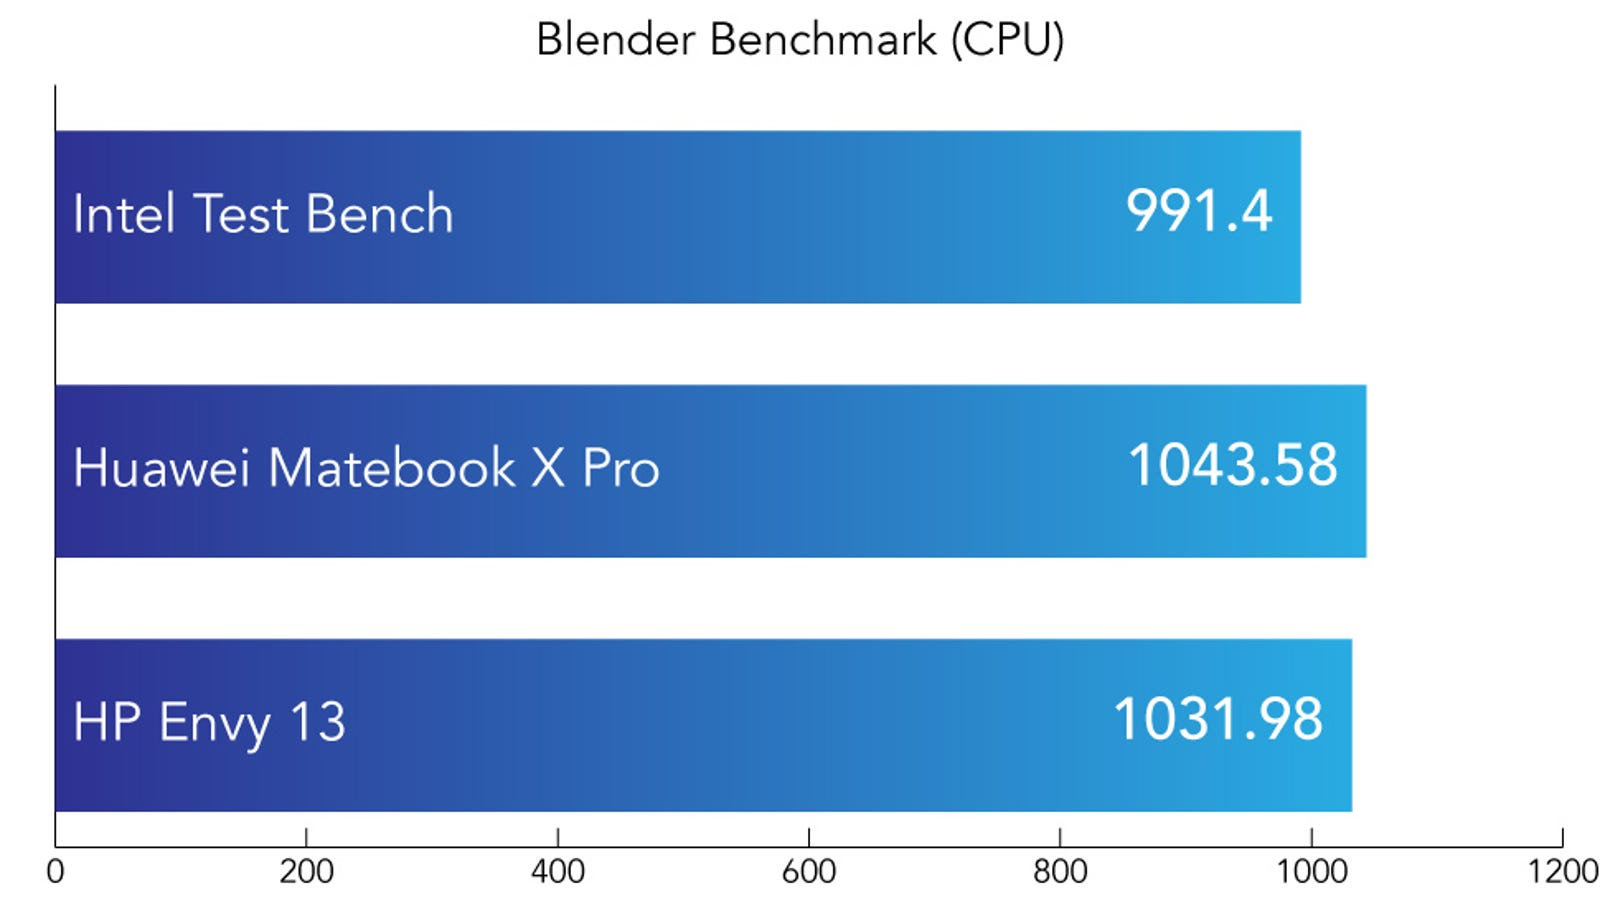 In Blender we process a 3D image and time how long, in seconds, it takes to complete the task. As noted this Blender test is designed to task the CPU. Shorter is better.